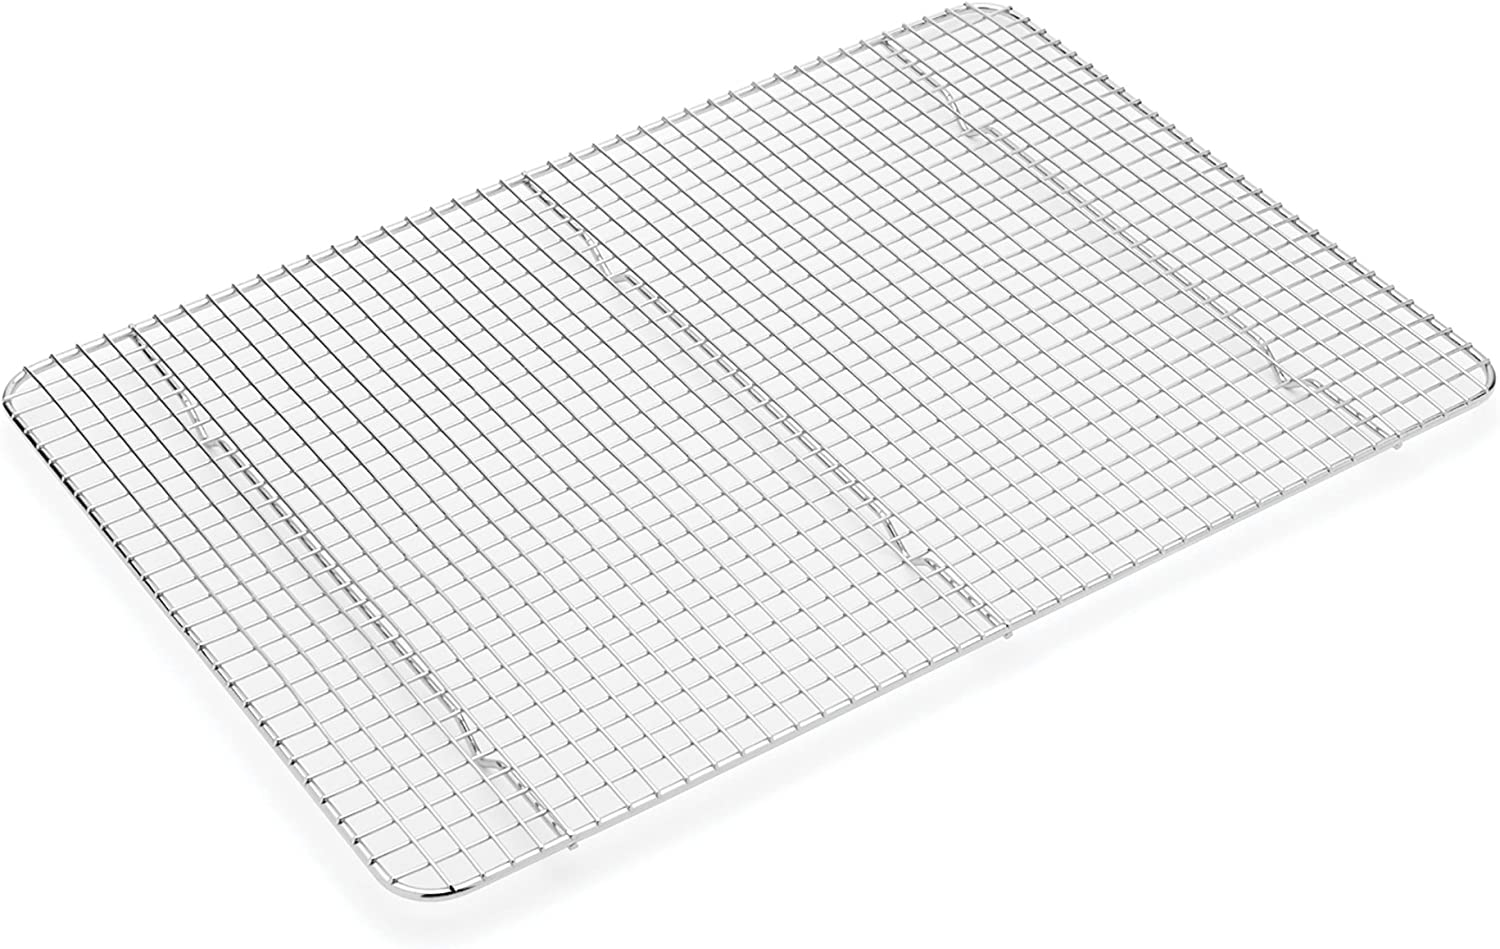 Fox Run 11695 Stainless Steel Cooling Rack, 12 x 17 x 1 inches, Metallic